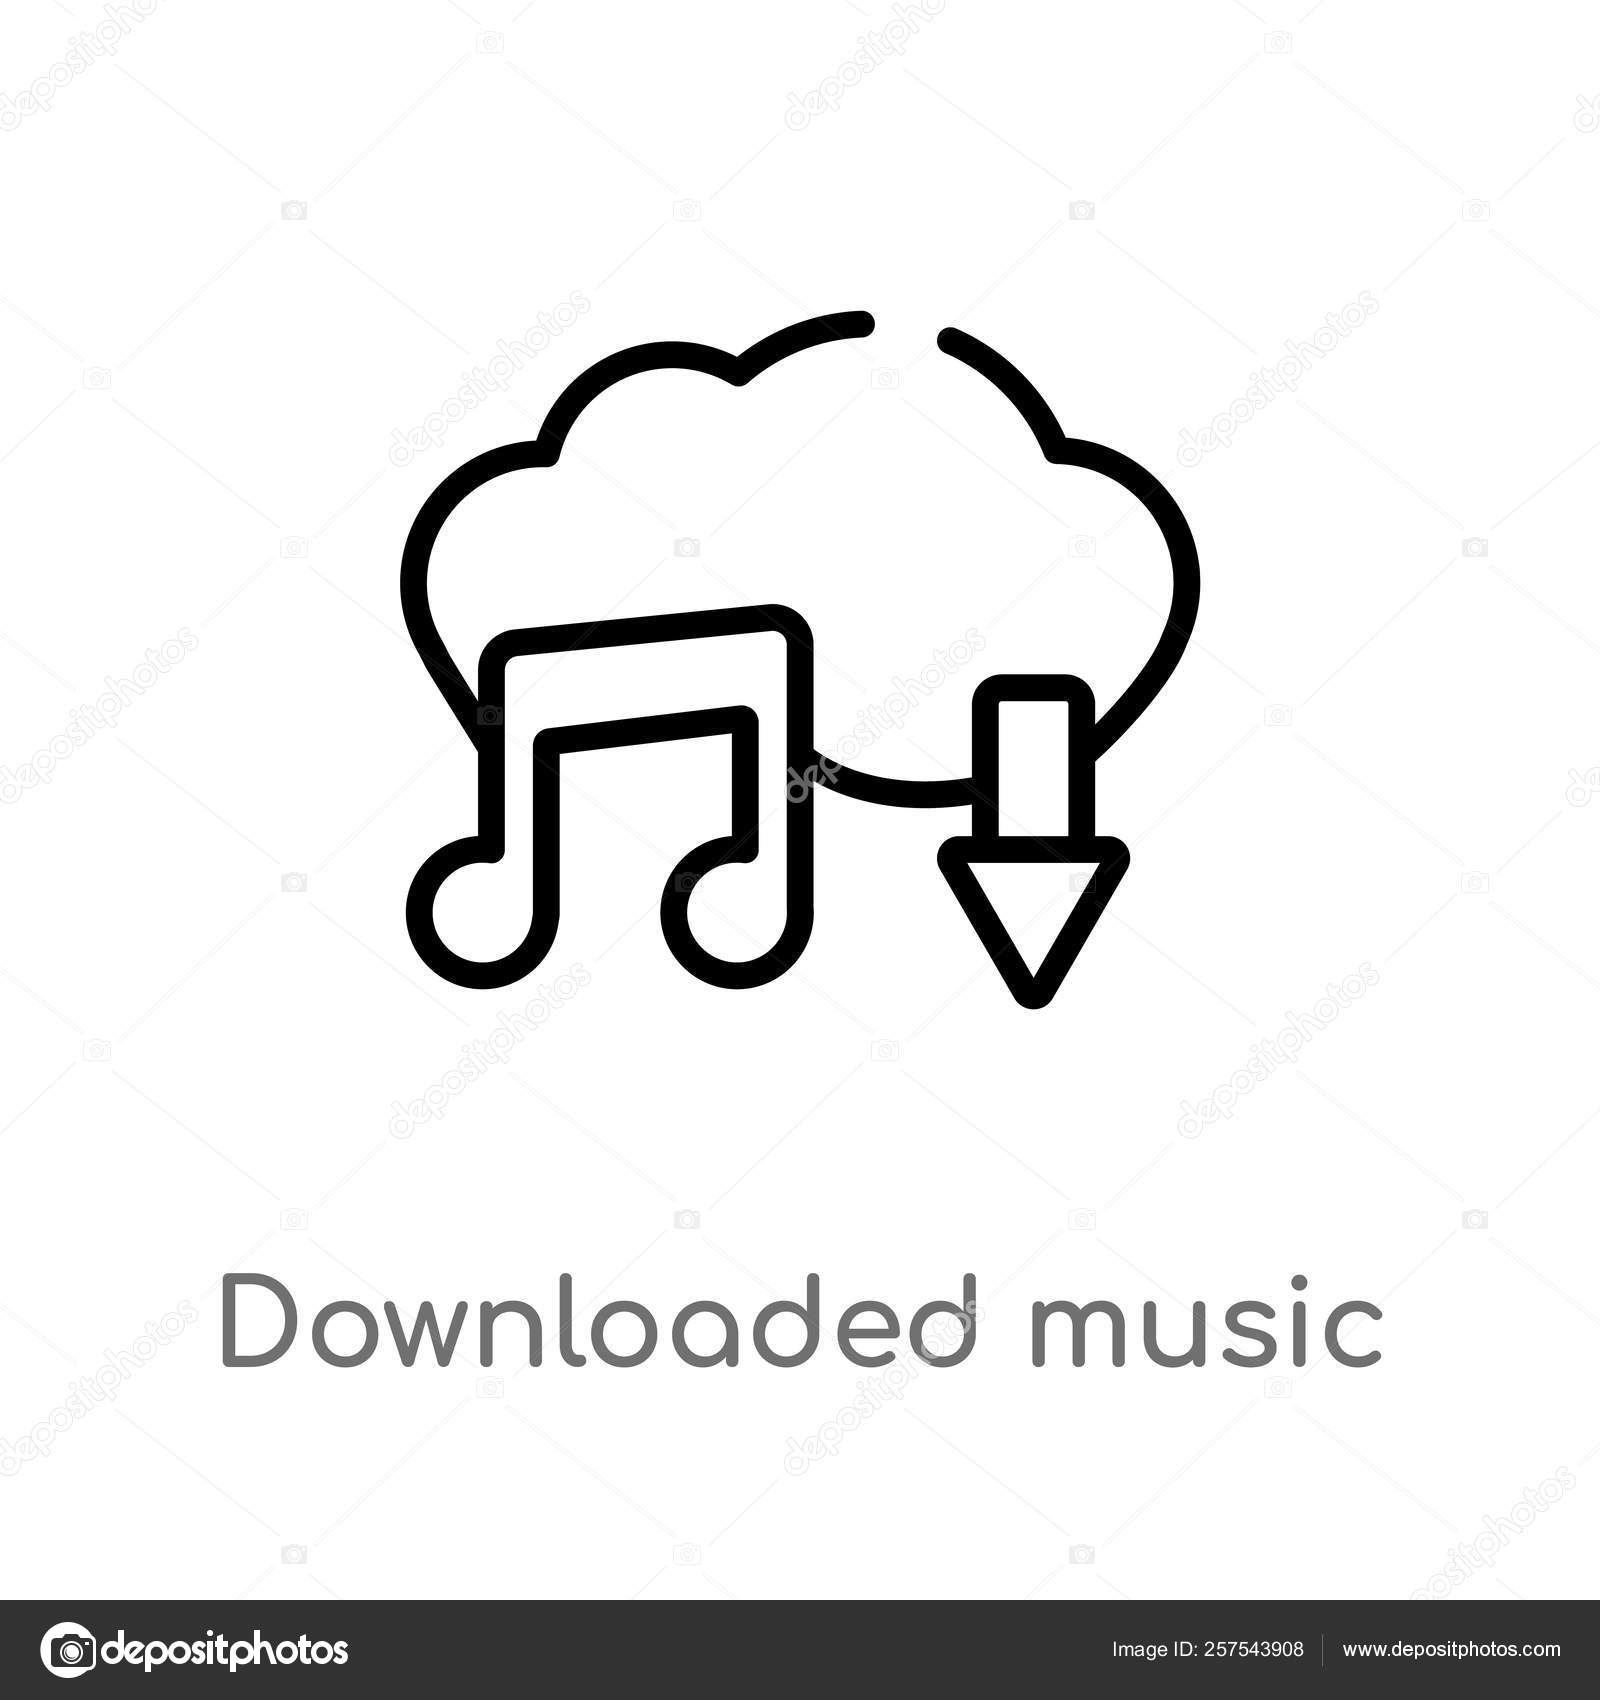 Outline Downloaded Music Cloud Vector Icon Isolated Black Simple